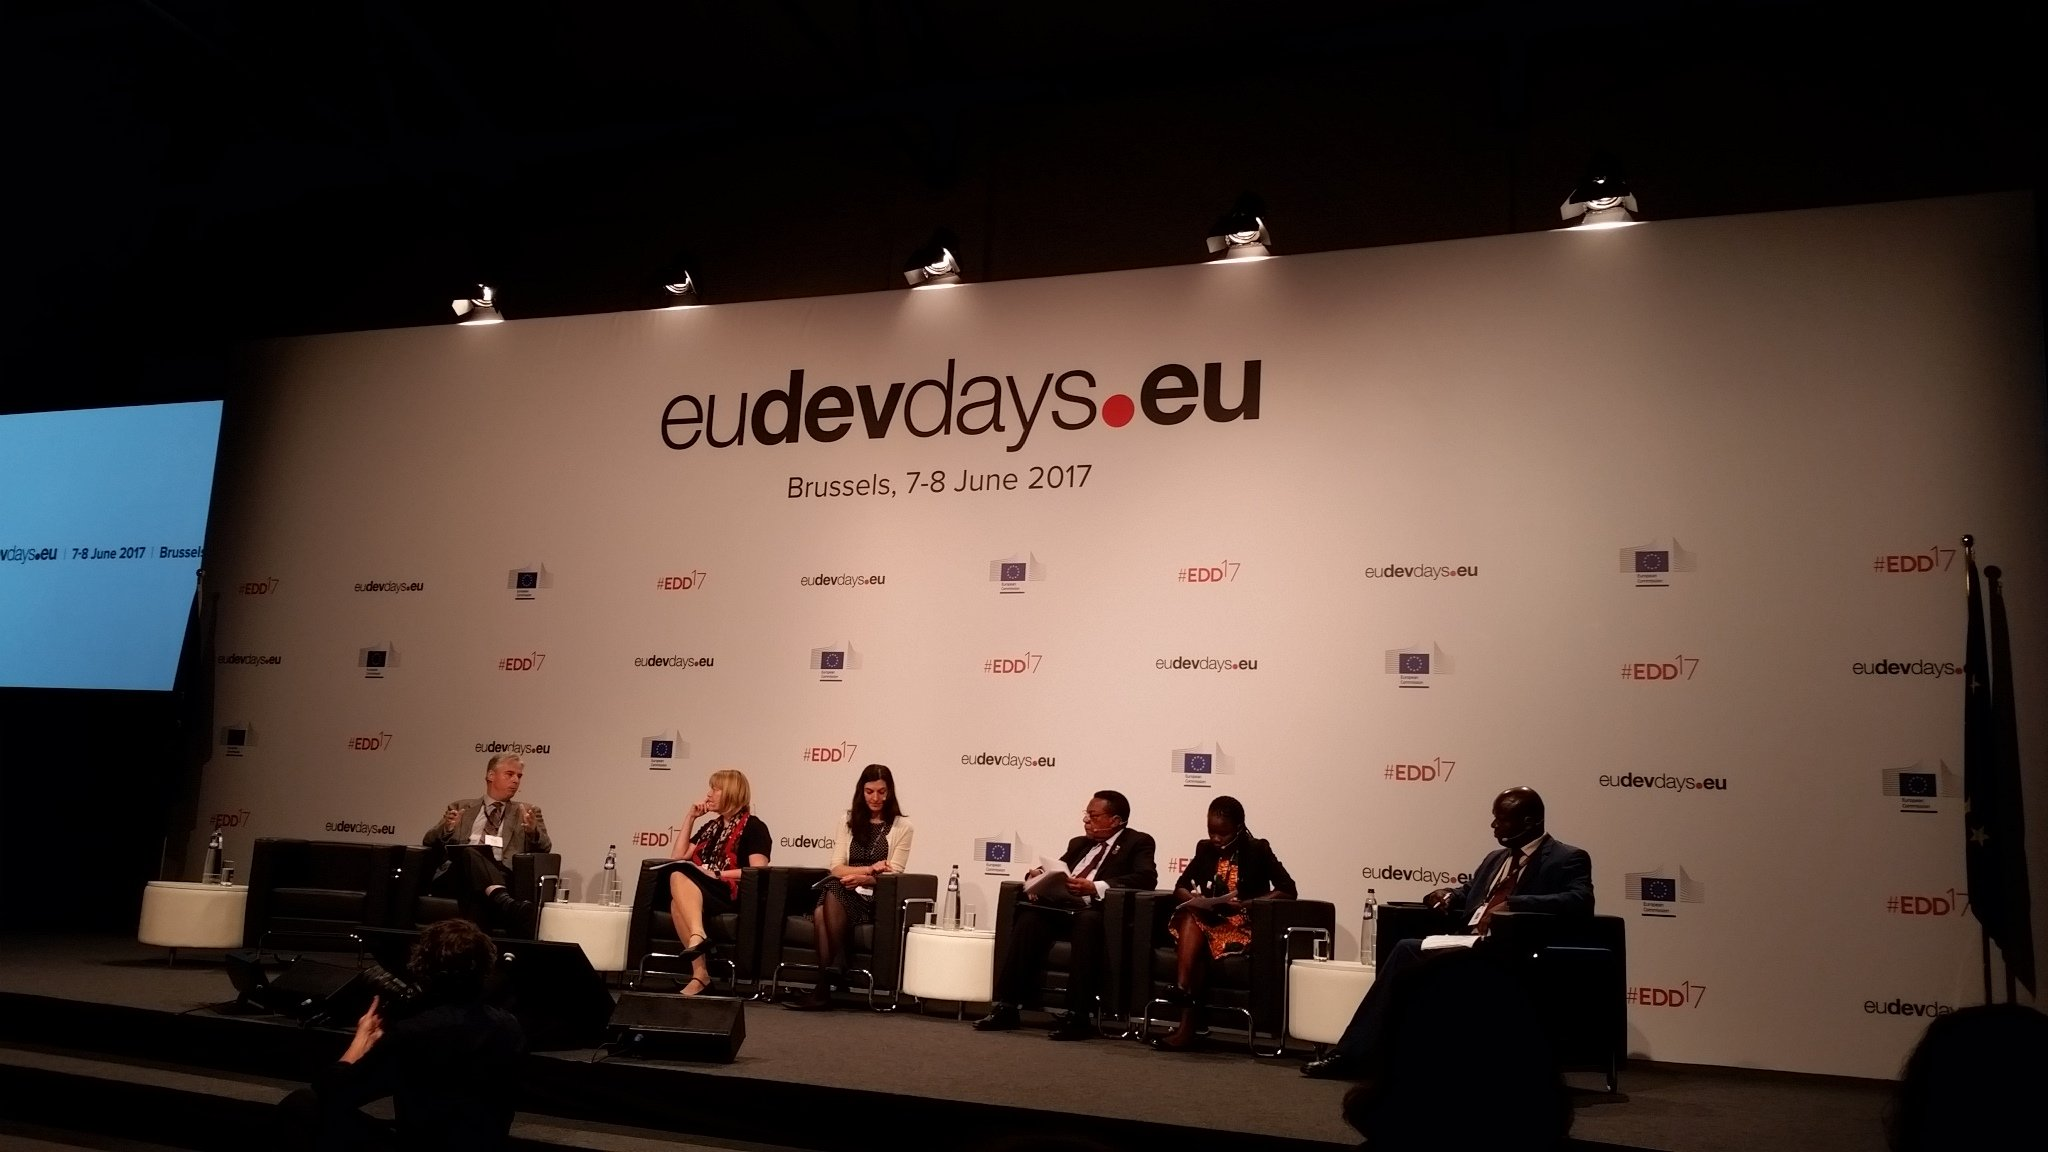 Discussing access of family planning services for young people at HLP at #EDD17   @C2030Europe and @ippfen https://t.co/txcRGOo2ji